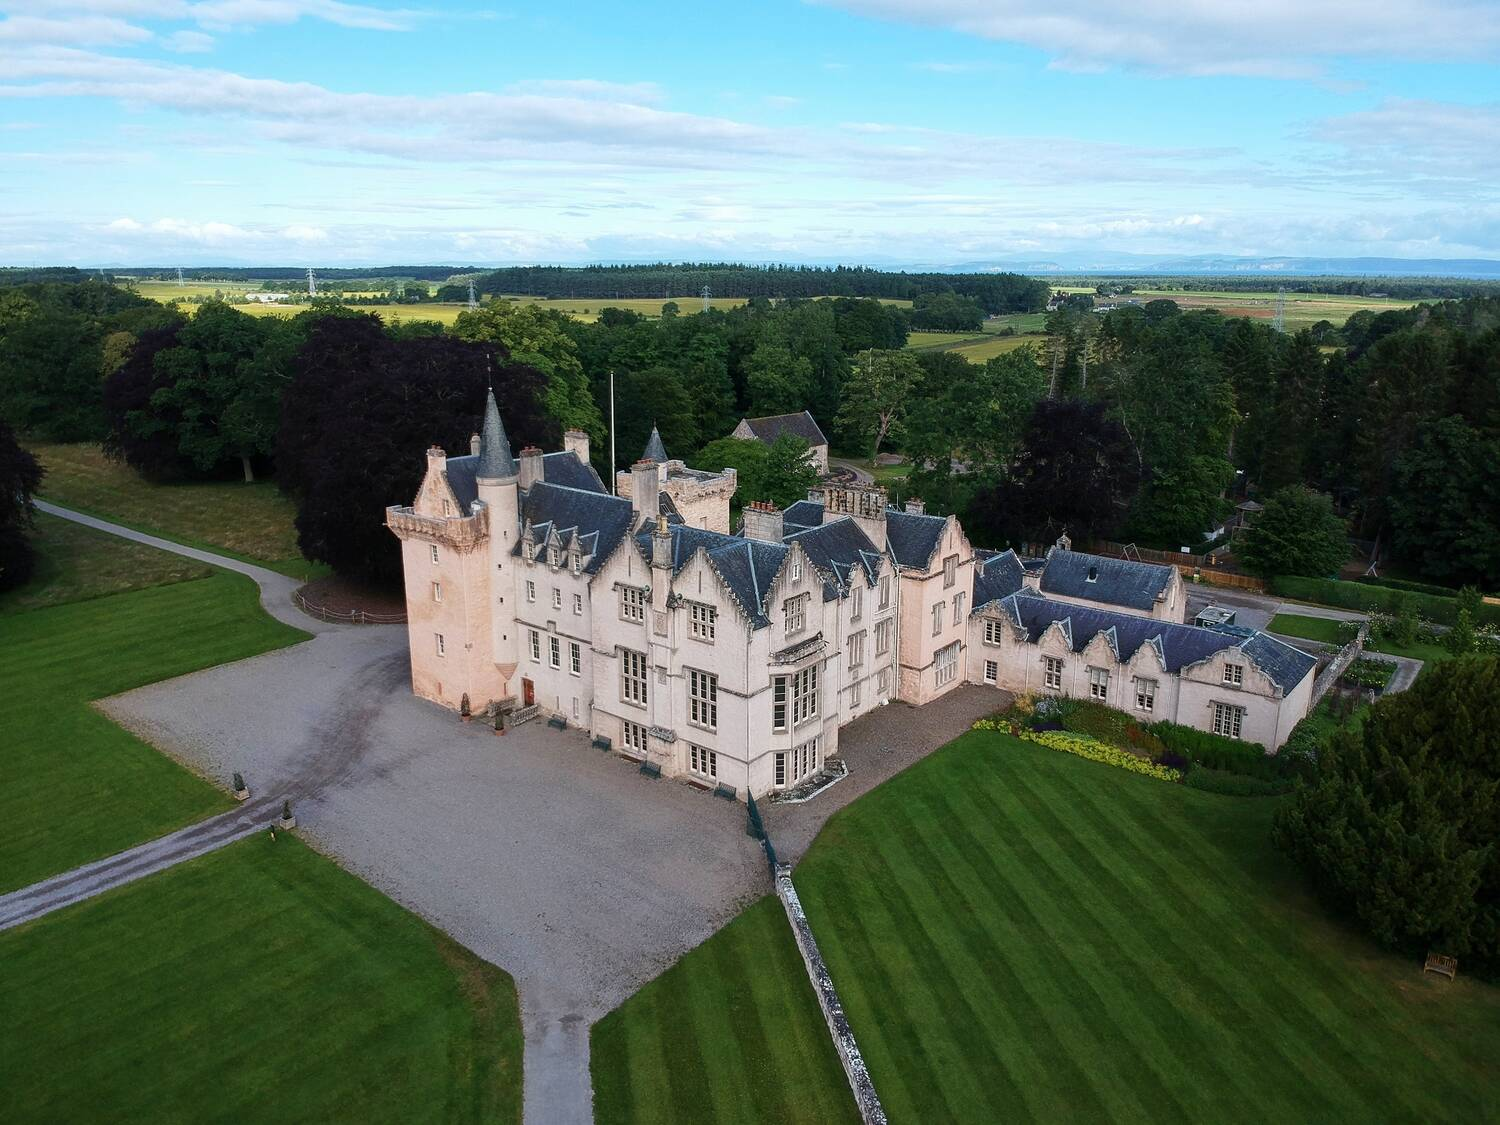 An aerial view of Brodie Castle, showing the building surrounded by manicured lawns and woodland. A large gravel drive with several paths leading off lies in front of the castle.